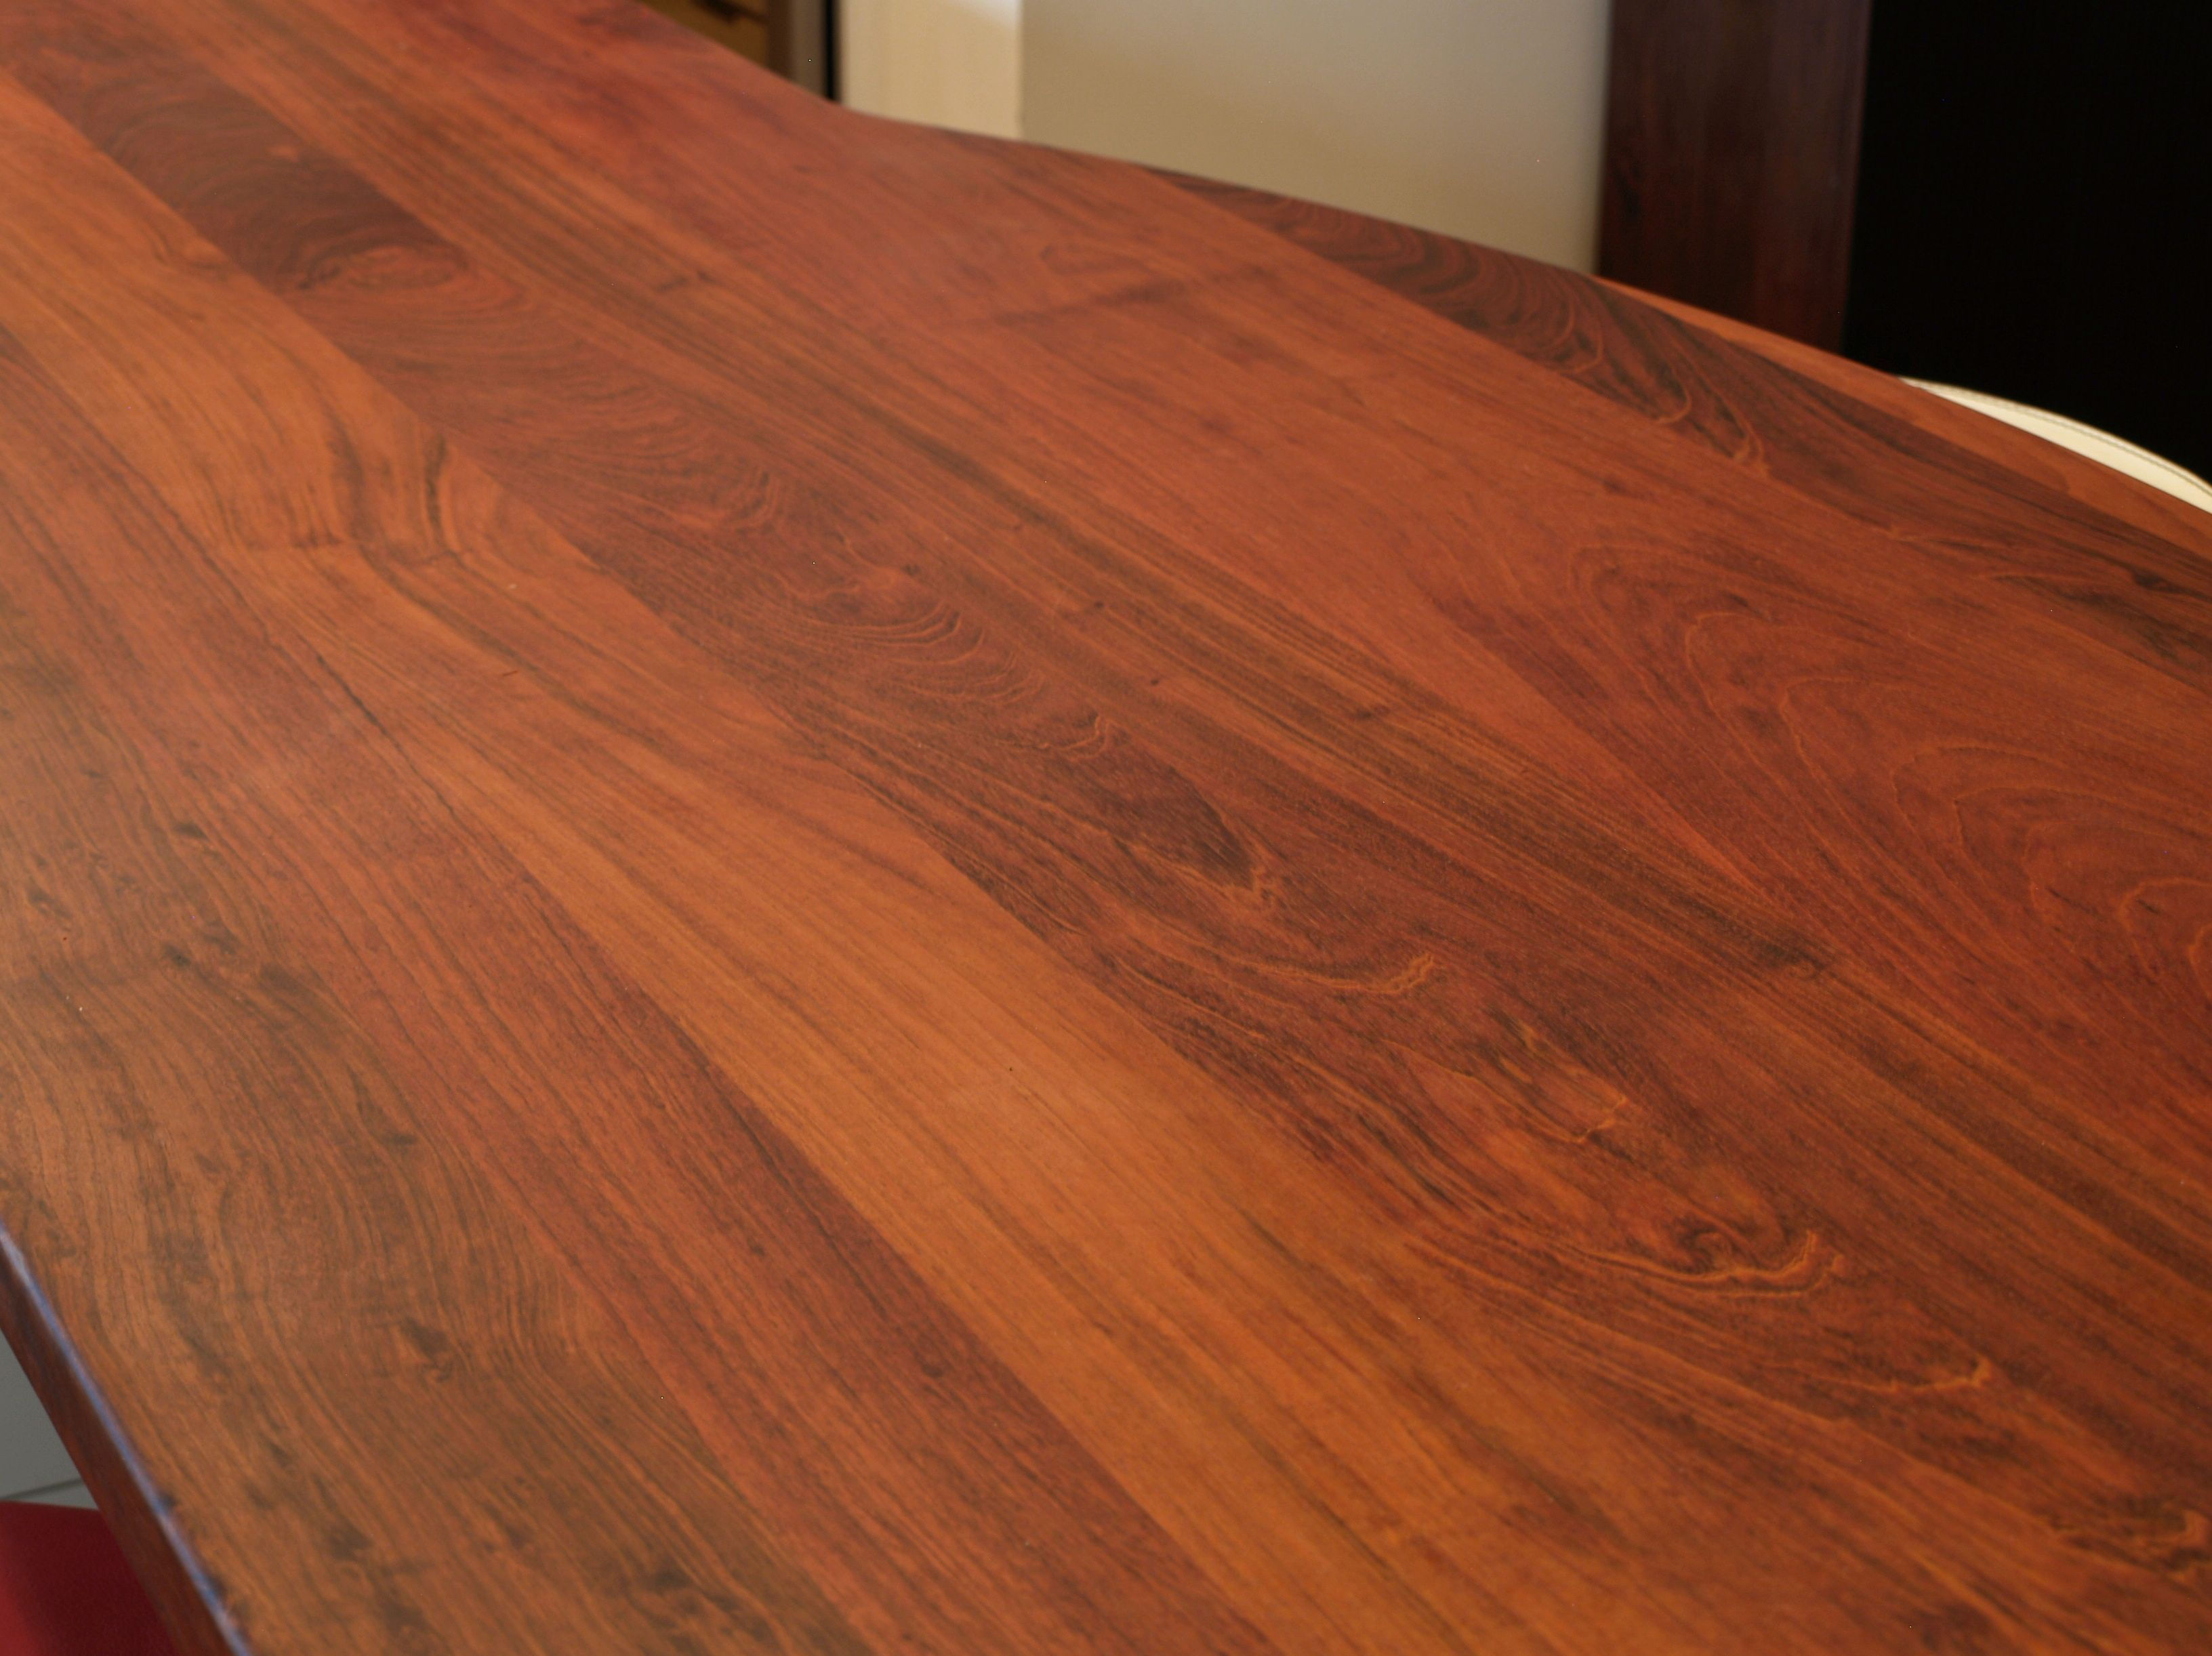 Jatoba face grain island countertop with Tung Oil Citrus finish.  Custom metal base designed by DeVos Custom Woodworking.